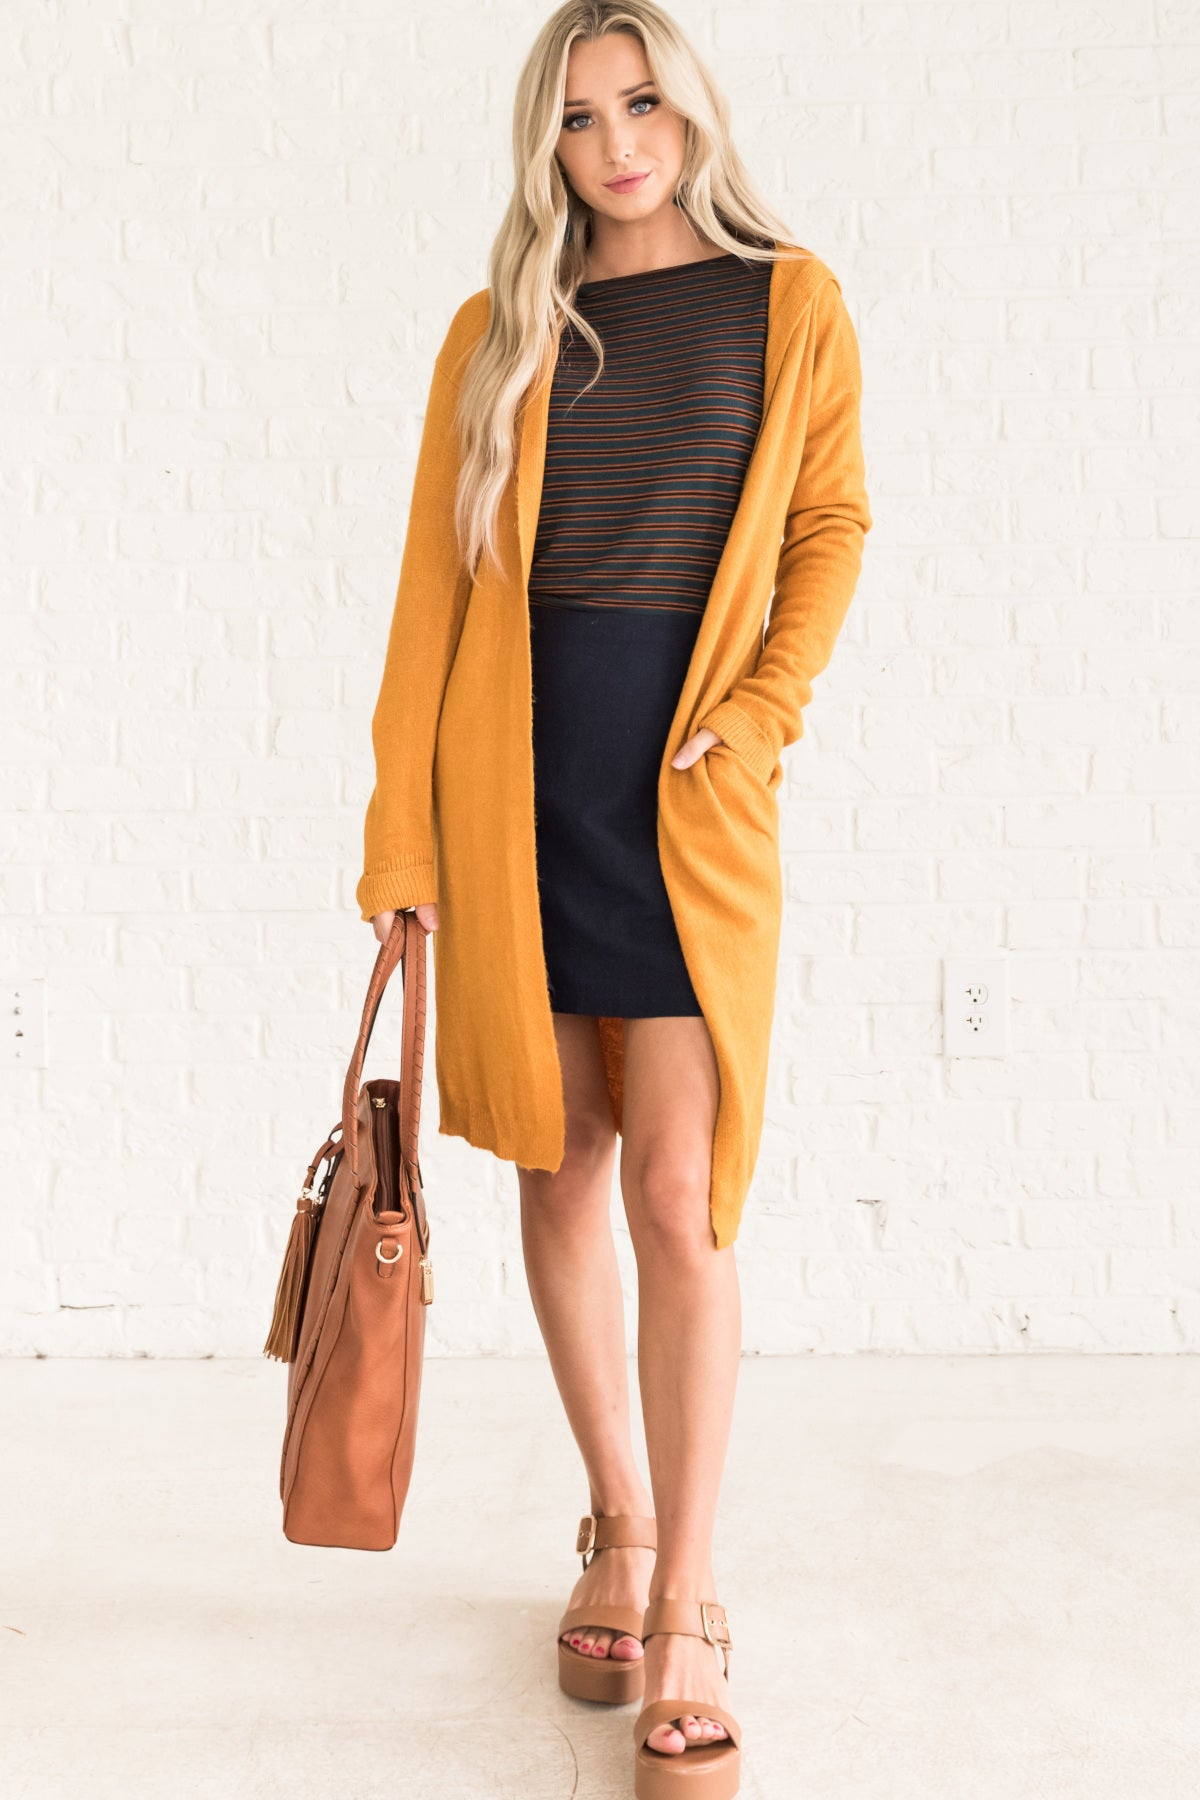 bf466a491a Mustard Yellow Long Cardigans for Women Cozy Warm Clothes